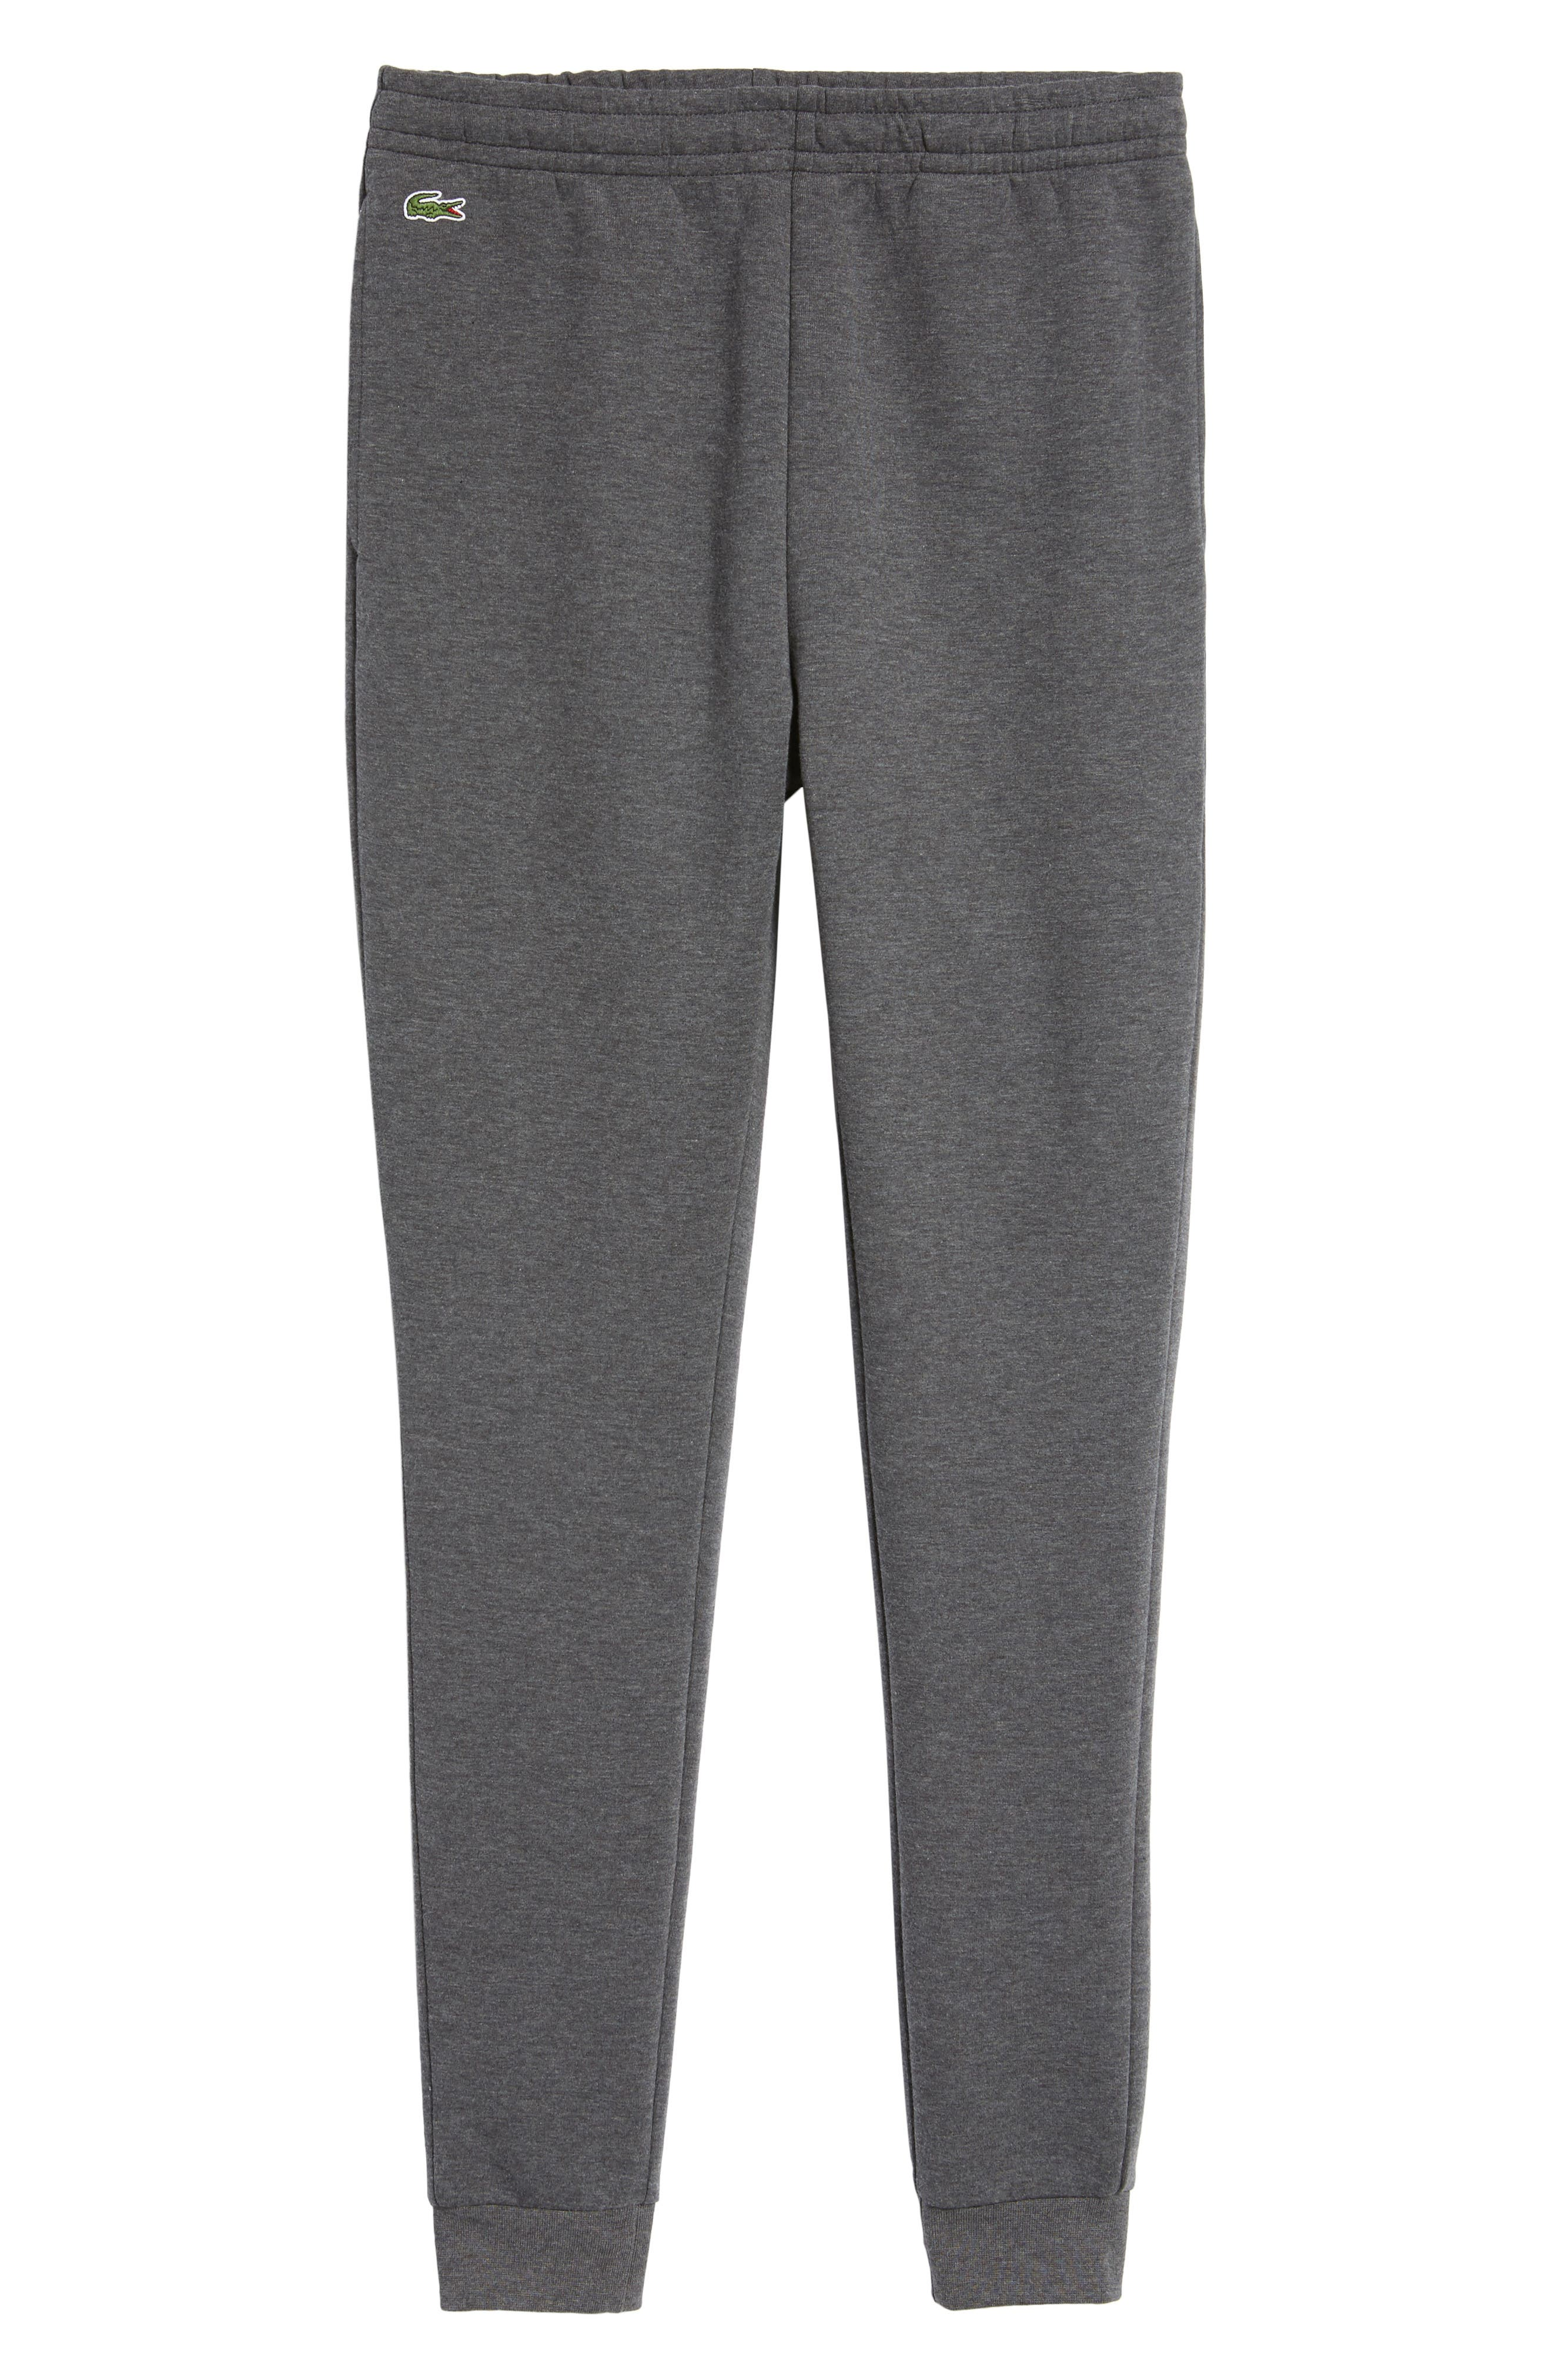 Lacoste Tapered Jogger Pants